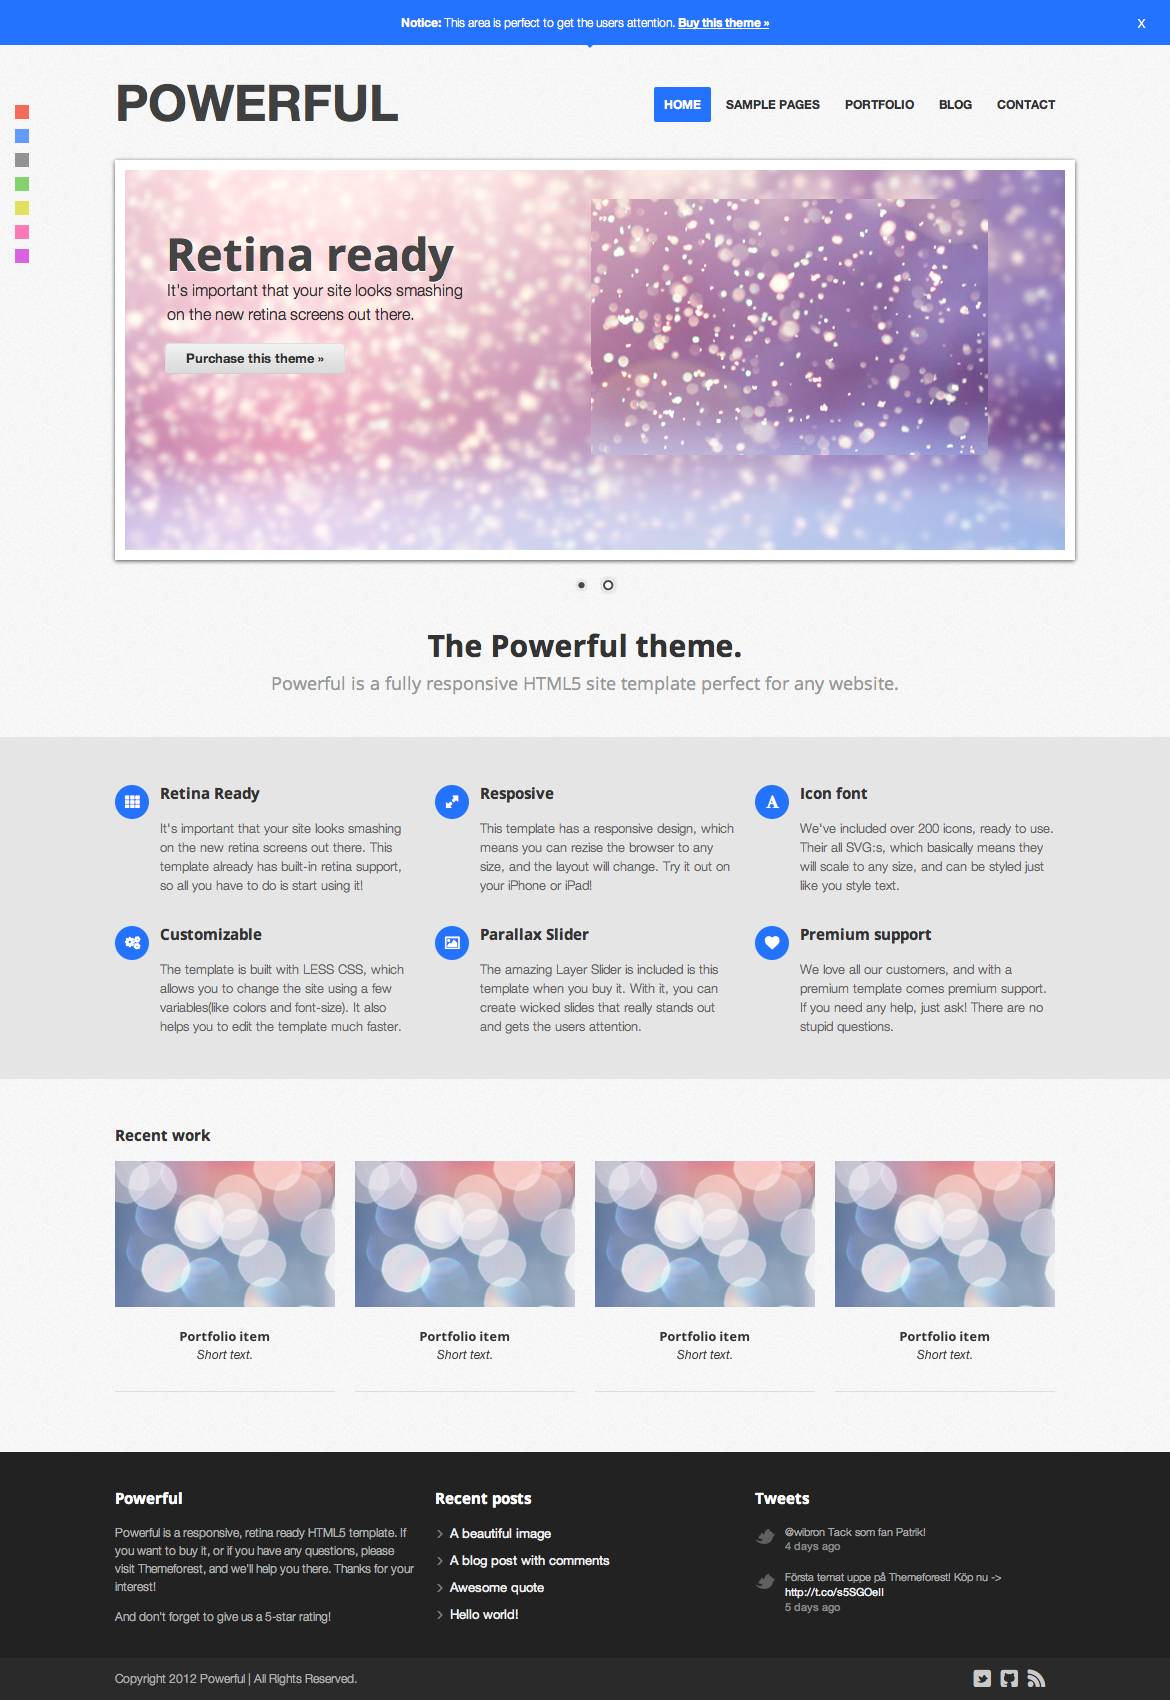 Powerful - Responsive, Retina-ready Theme